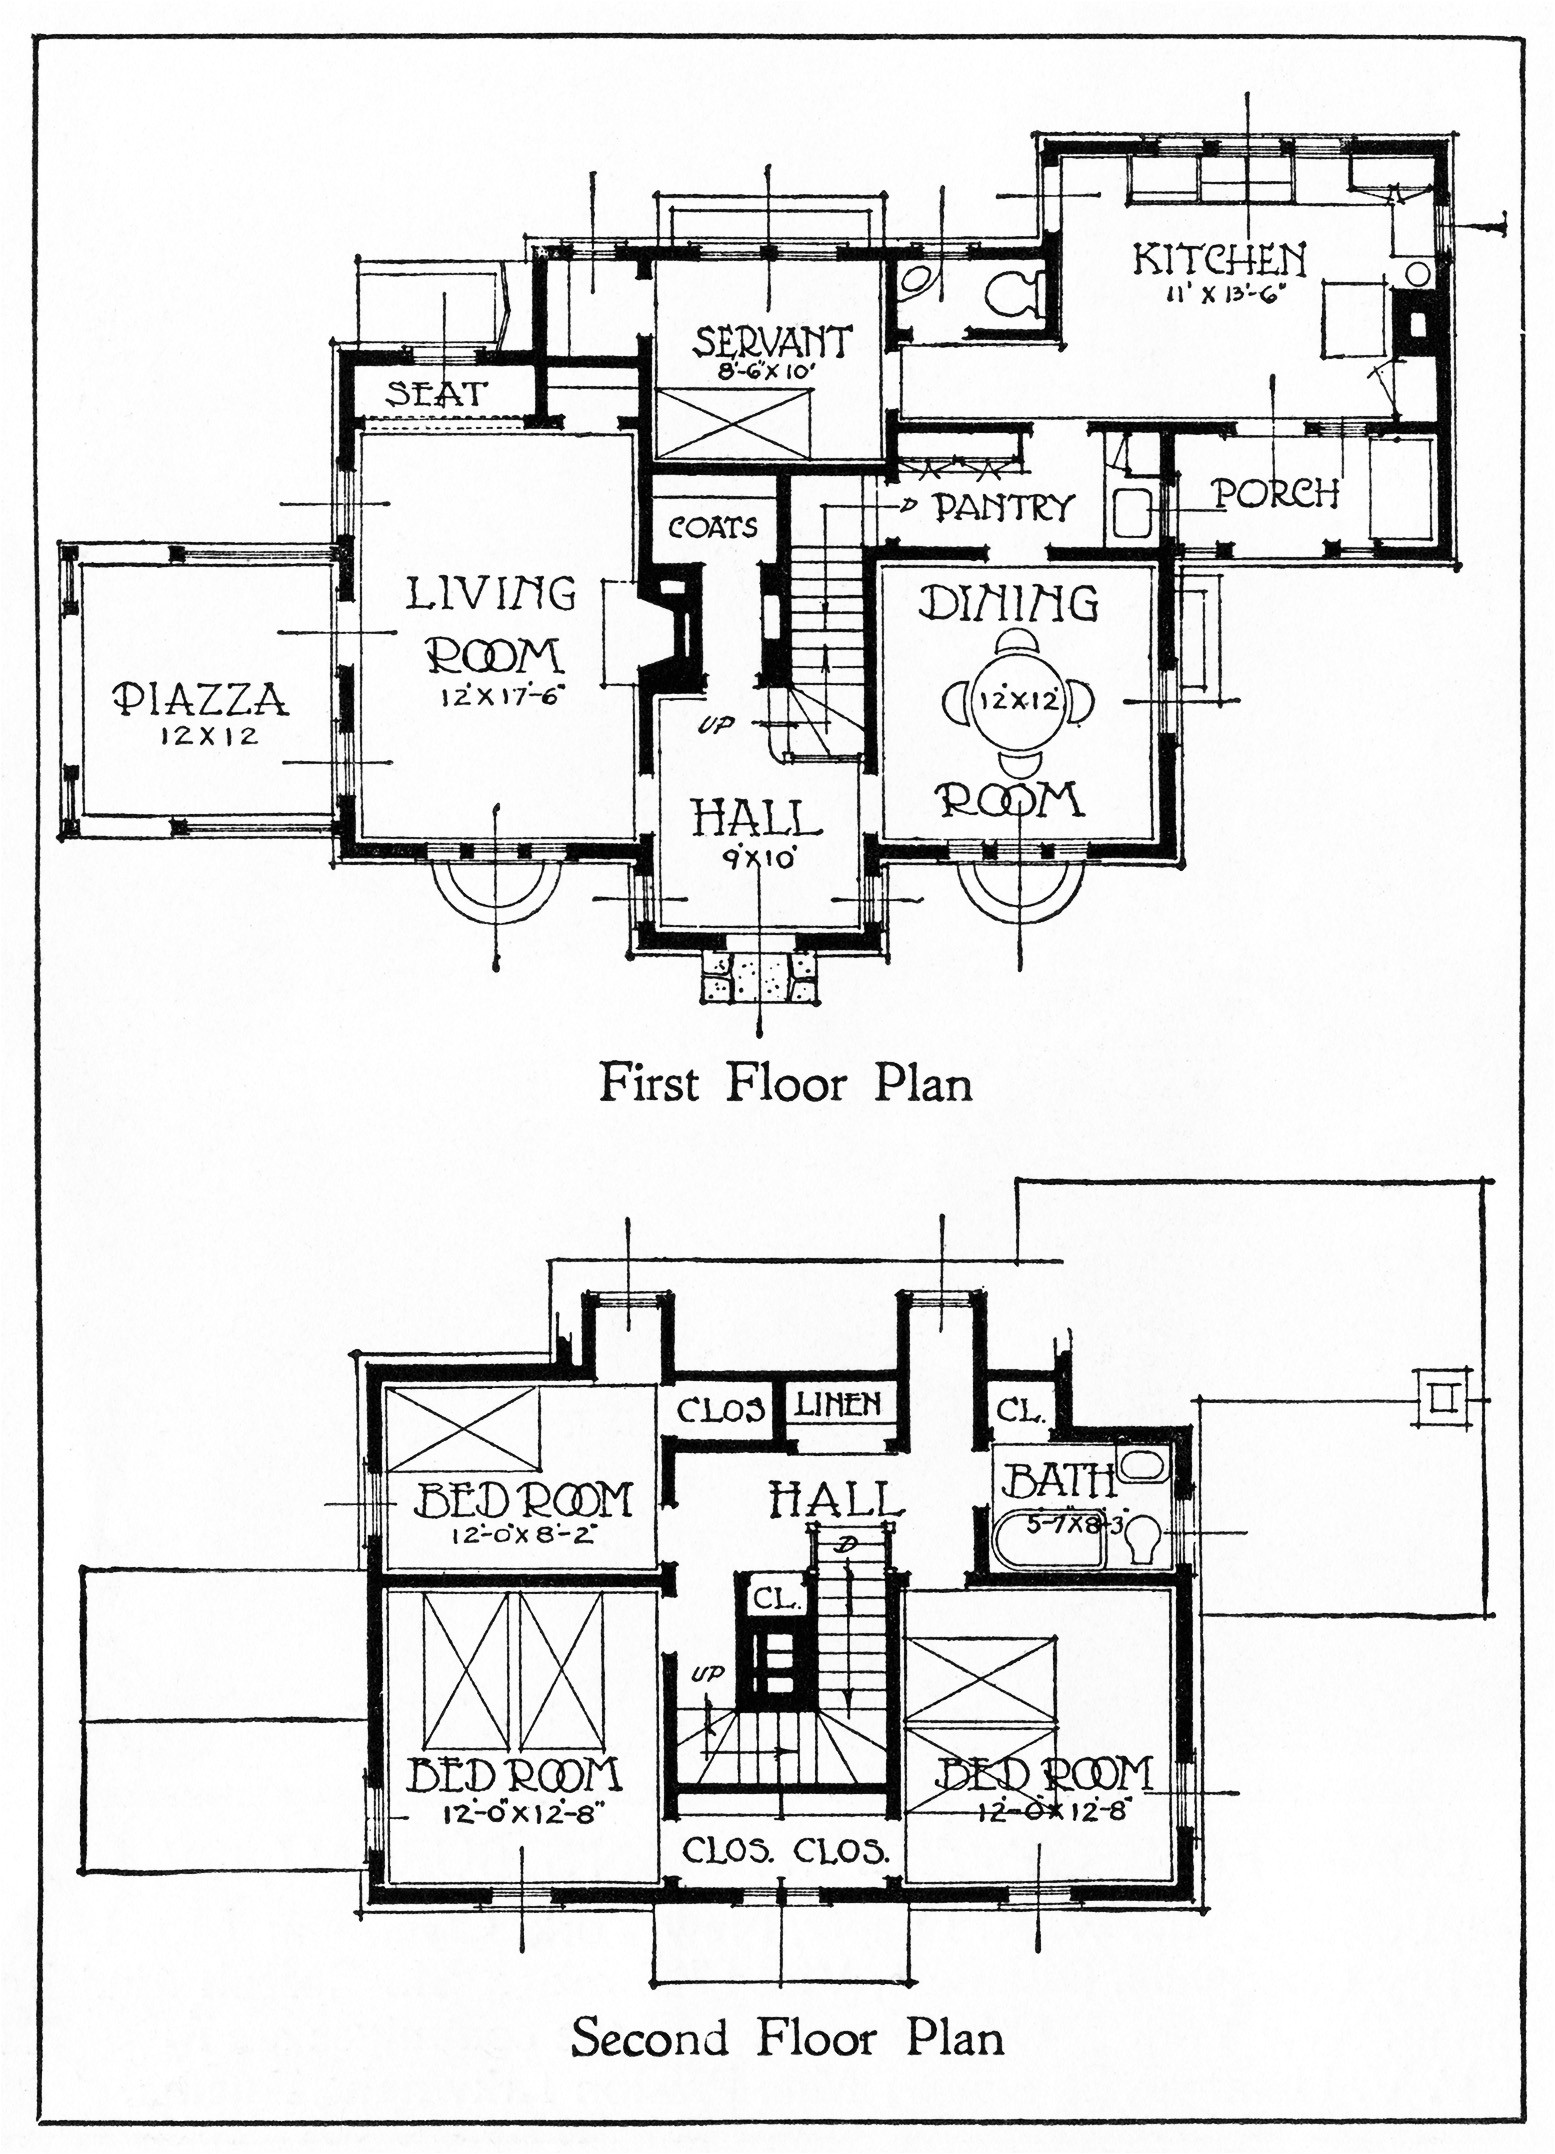 free vintage images 1917 house illustration and floor plans